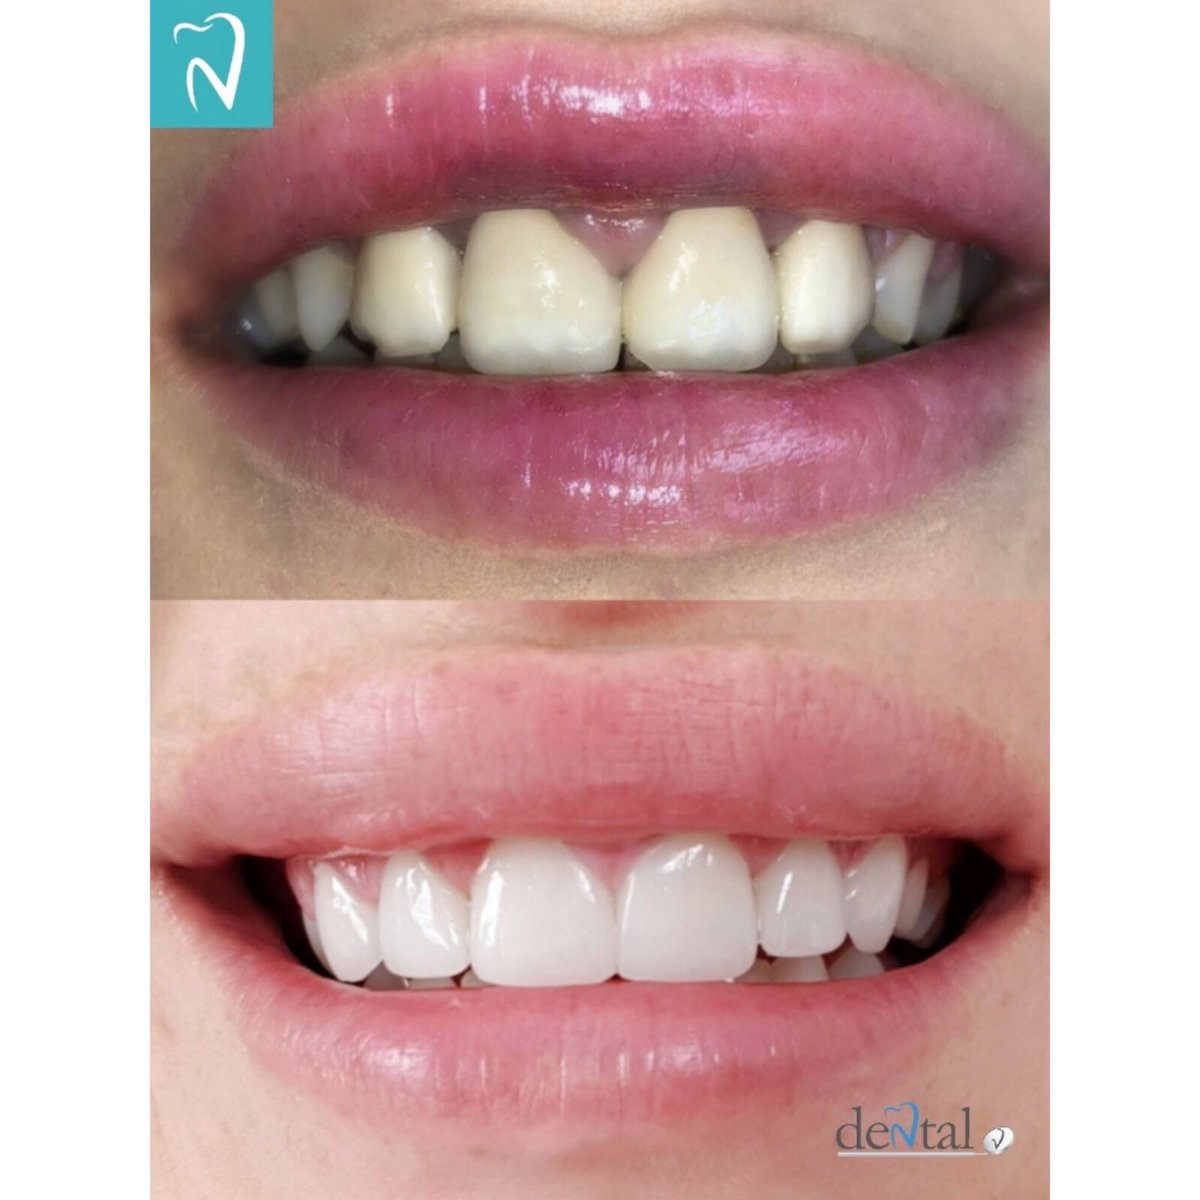 Gingivectomy and gingivoplasty. Old crowns are replaced with new ones and veneers, changing arch, shape, size and colour of the teeth.#dentistry #dentist #dental #smile #teeth #odontologia #cosmeticdentistry #dentalphotography #dentalcare #dentalimplants #veneers #dentalvclinicpic.twitter.com/JJiS1exiEz